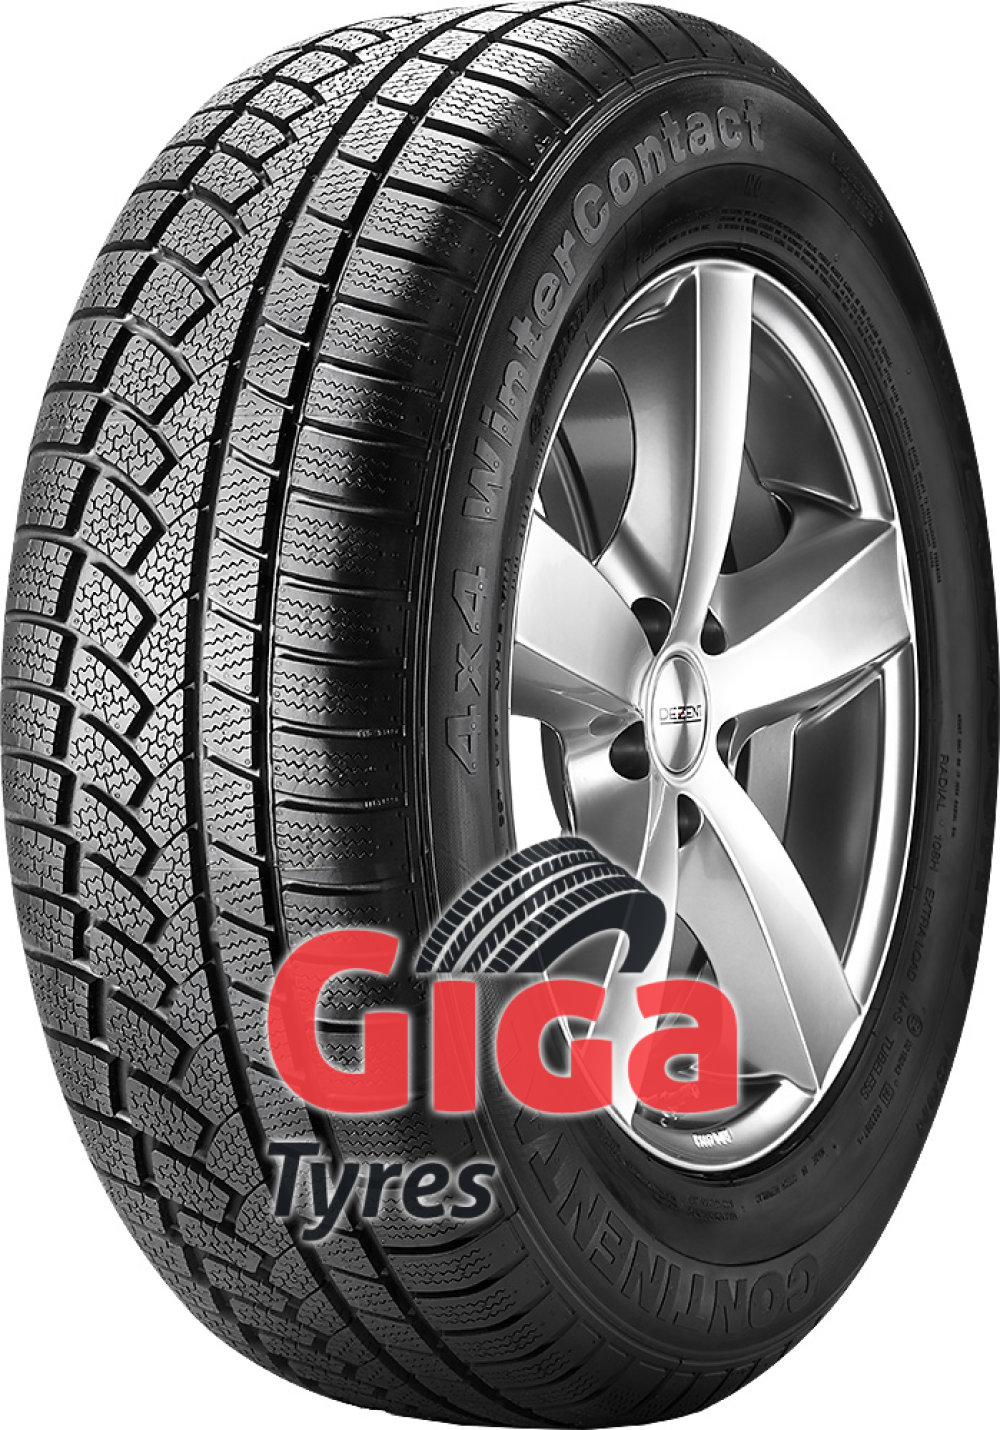 Continental 4X4 WinterContact ( 235/65 R17 104H , MO, with ridge  )